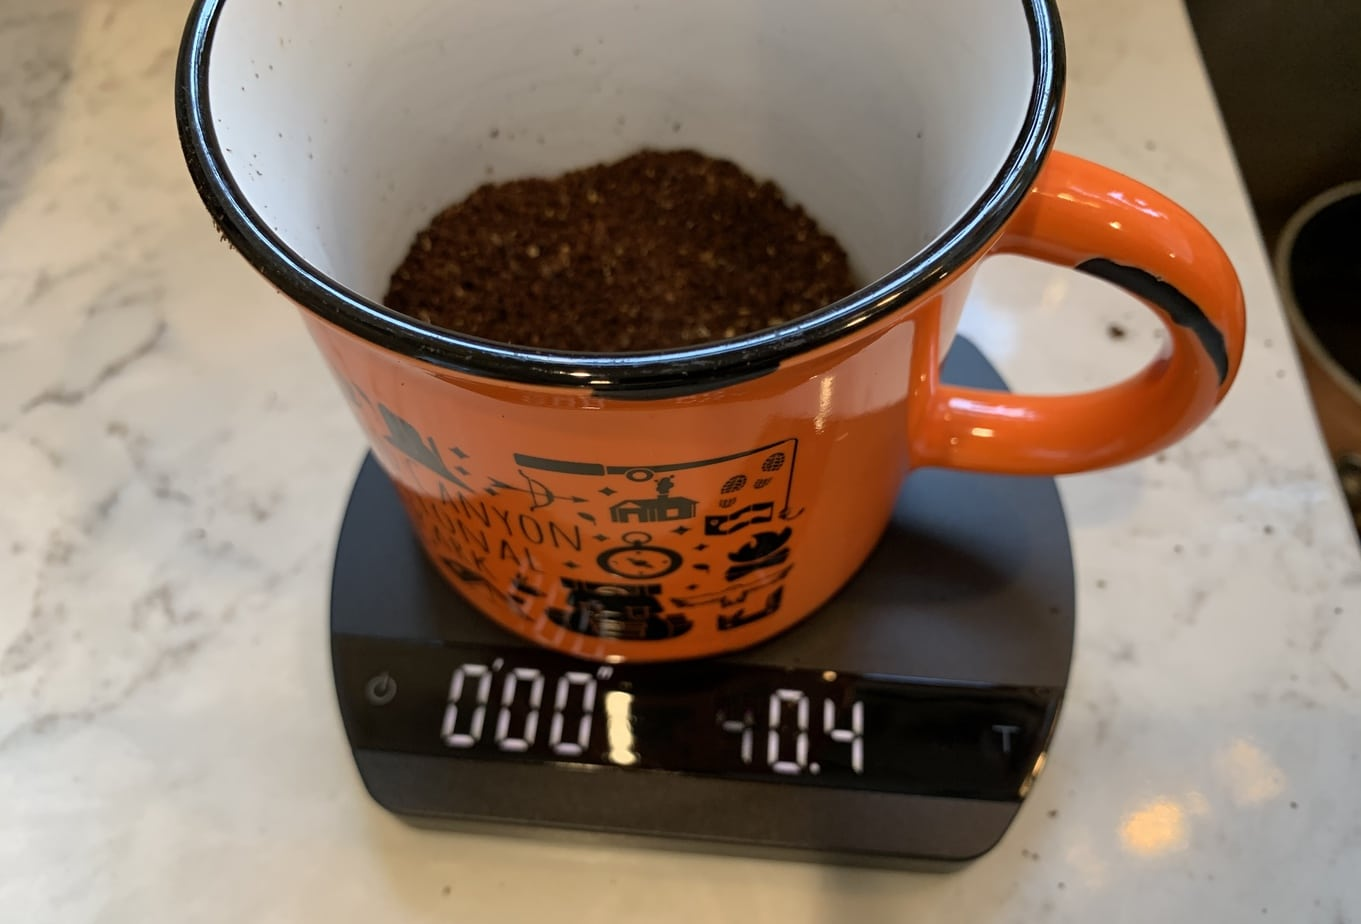 Coffee Scale Measurement